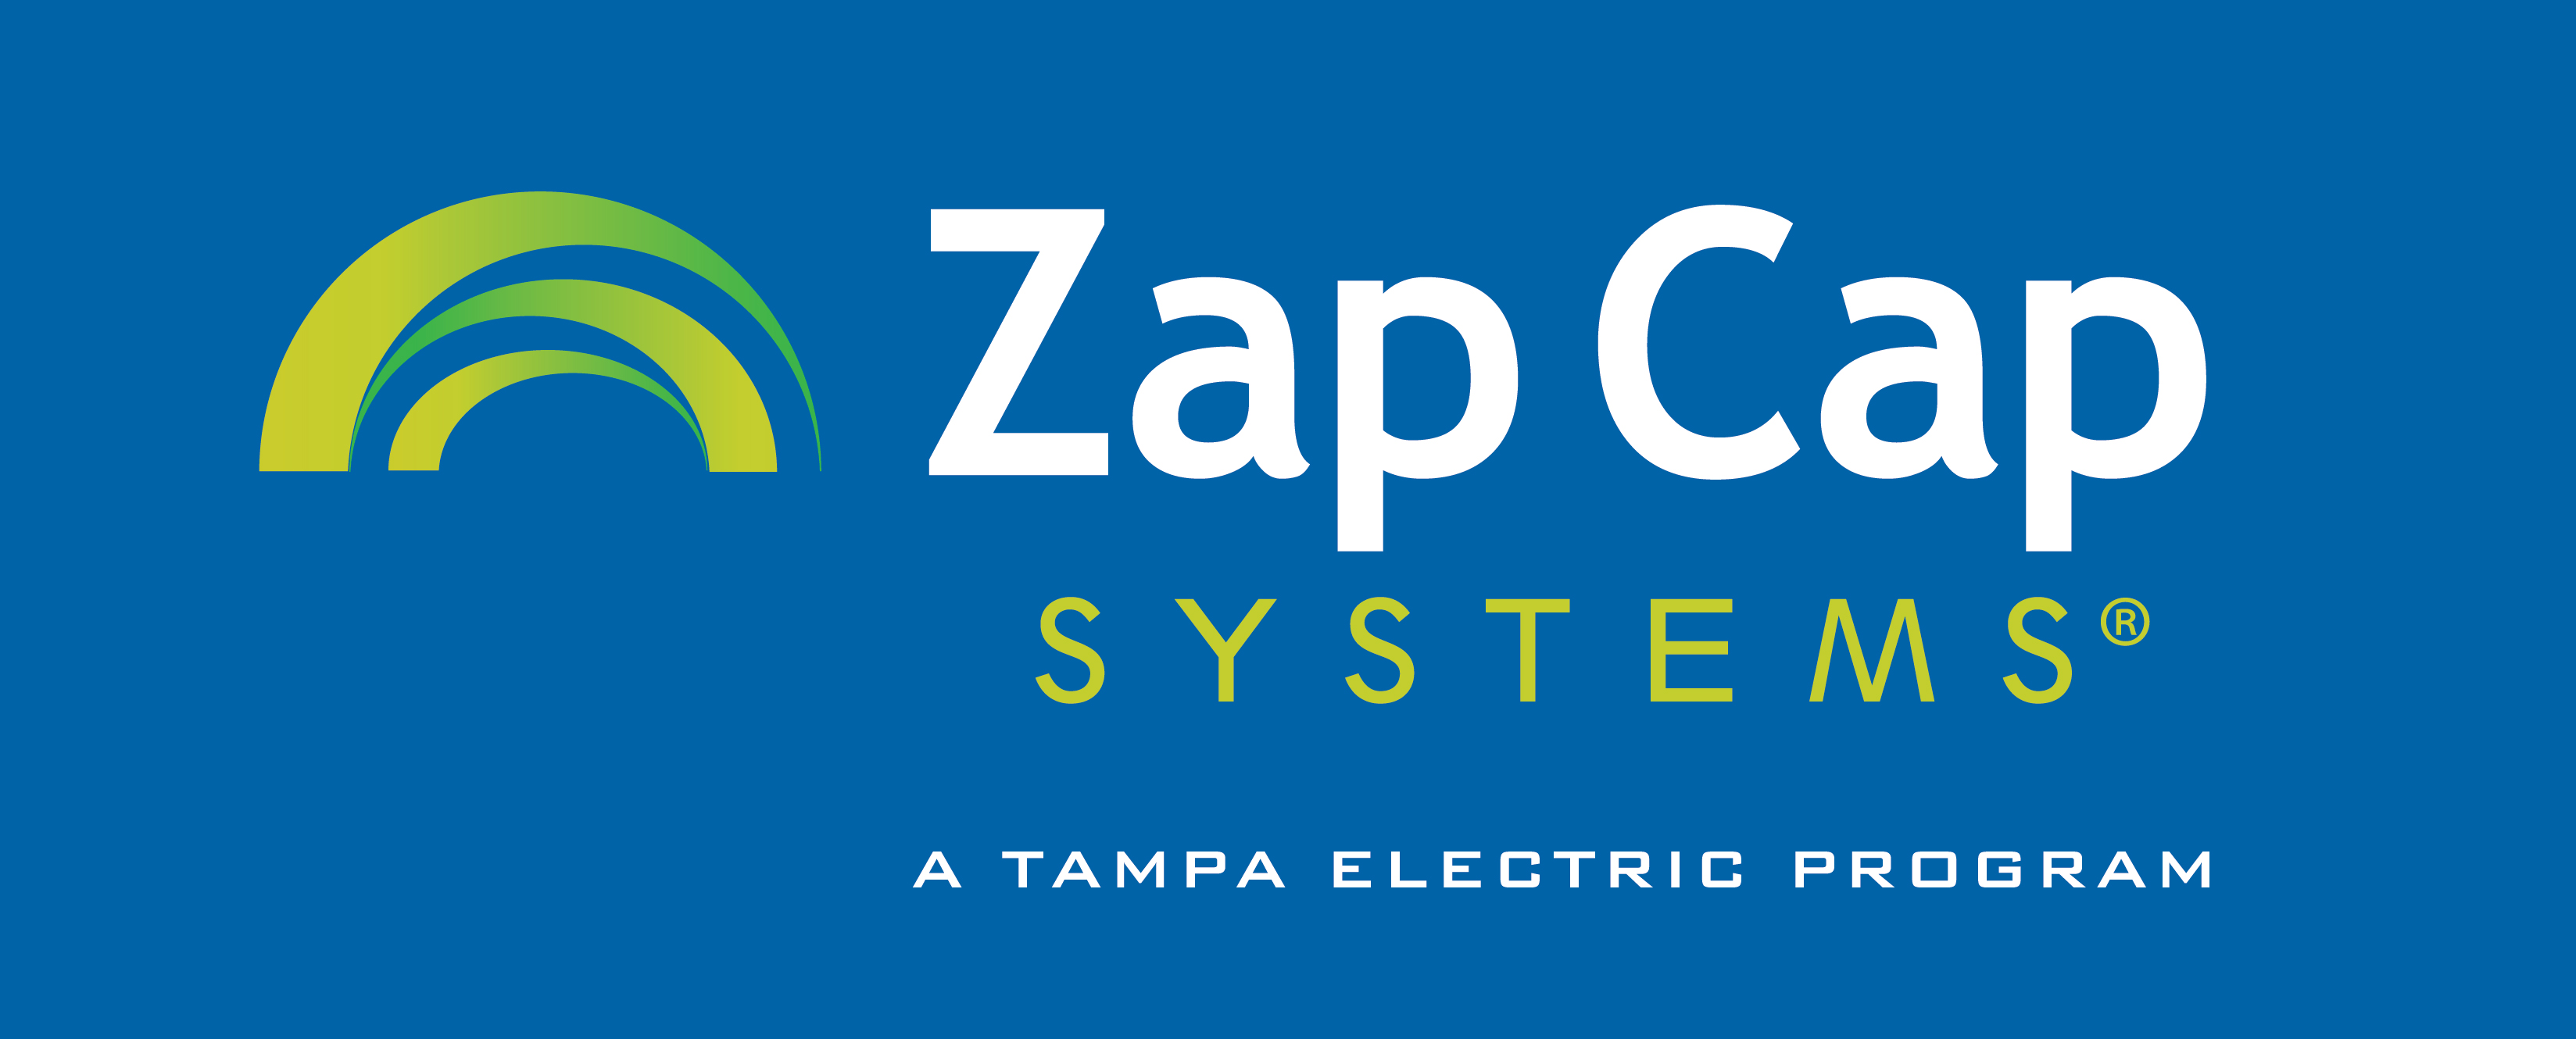 Tampa Electric Selects Brandmark Advertising to Produce Zap Cap TV and Radio Spots